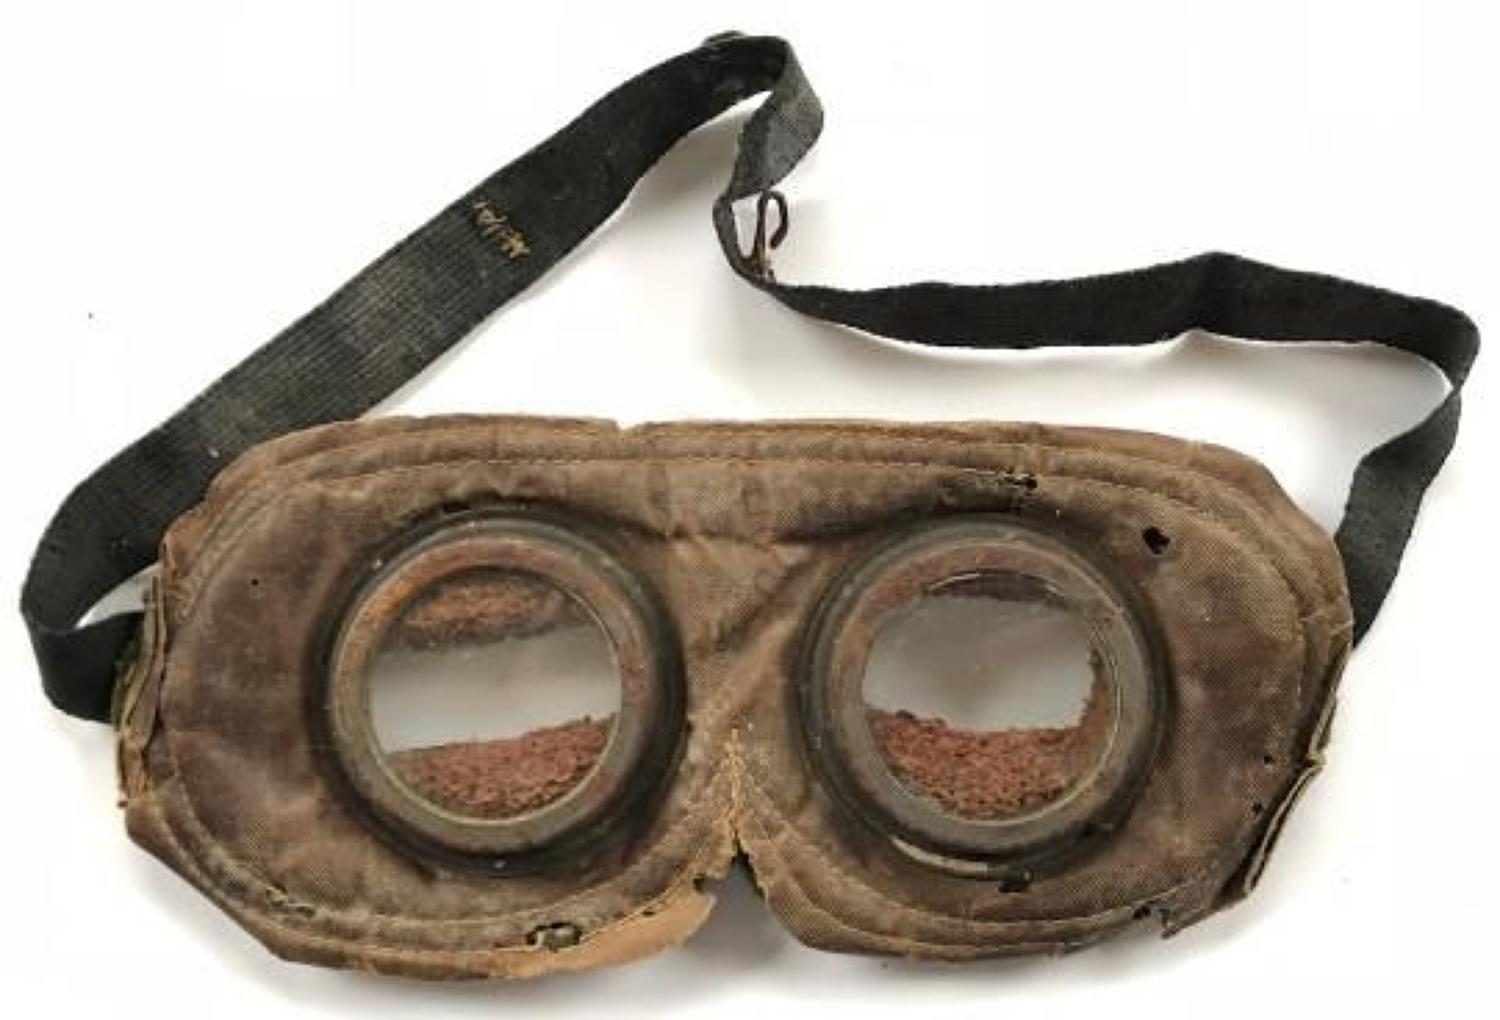 WW1 Circa 1915 British Army Issue Gas Goggles.